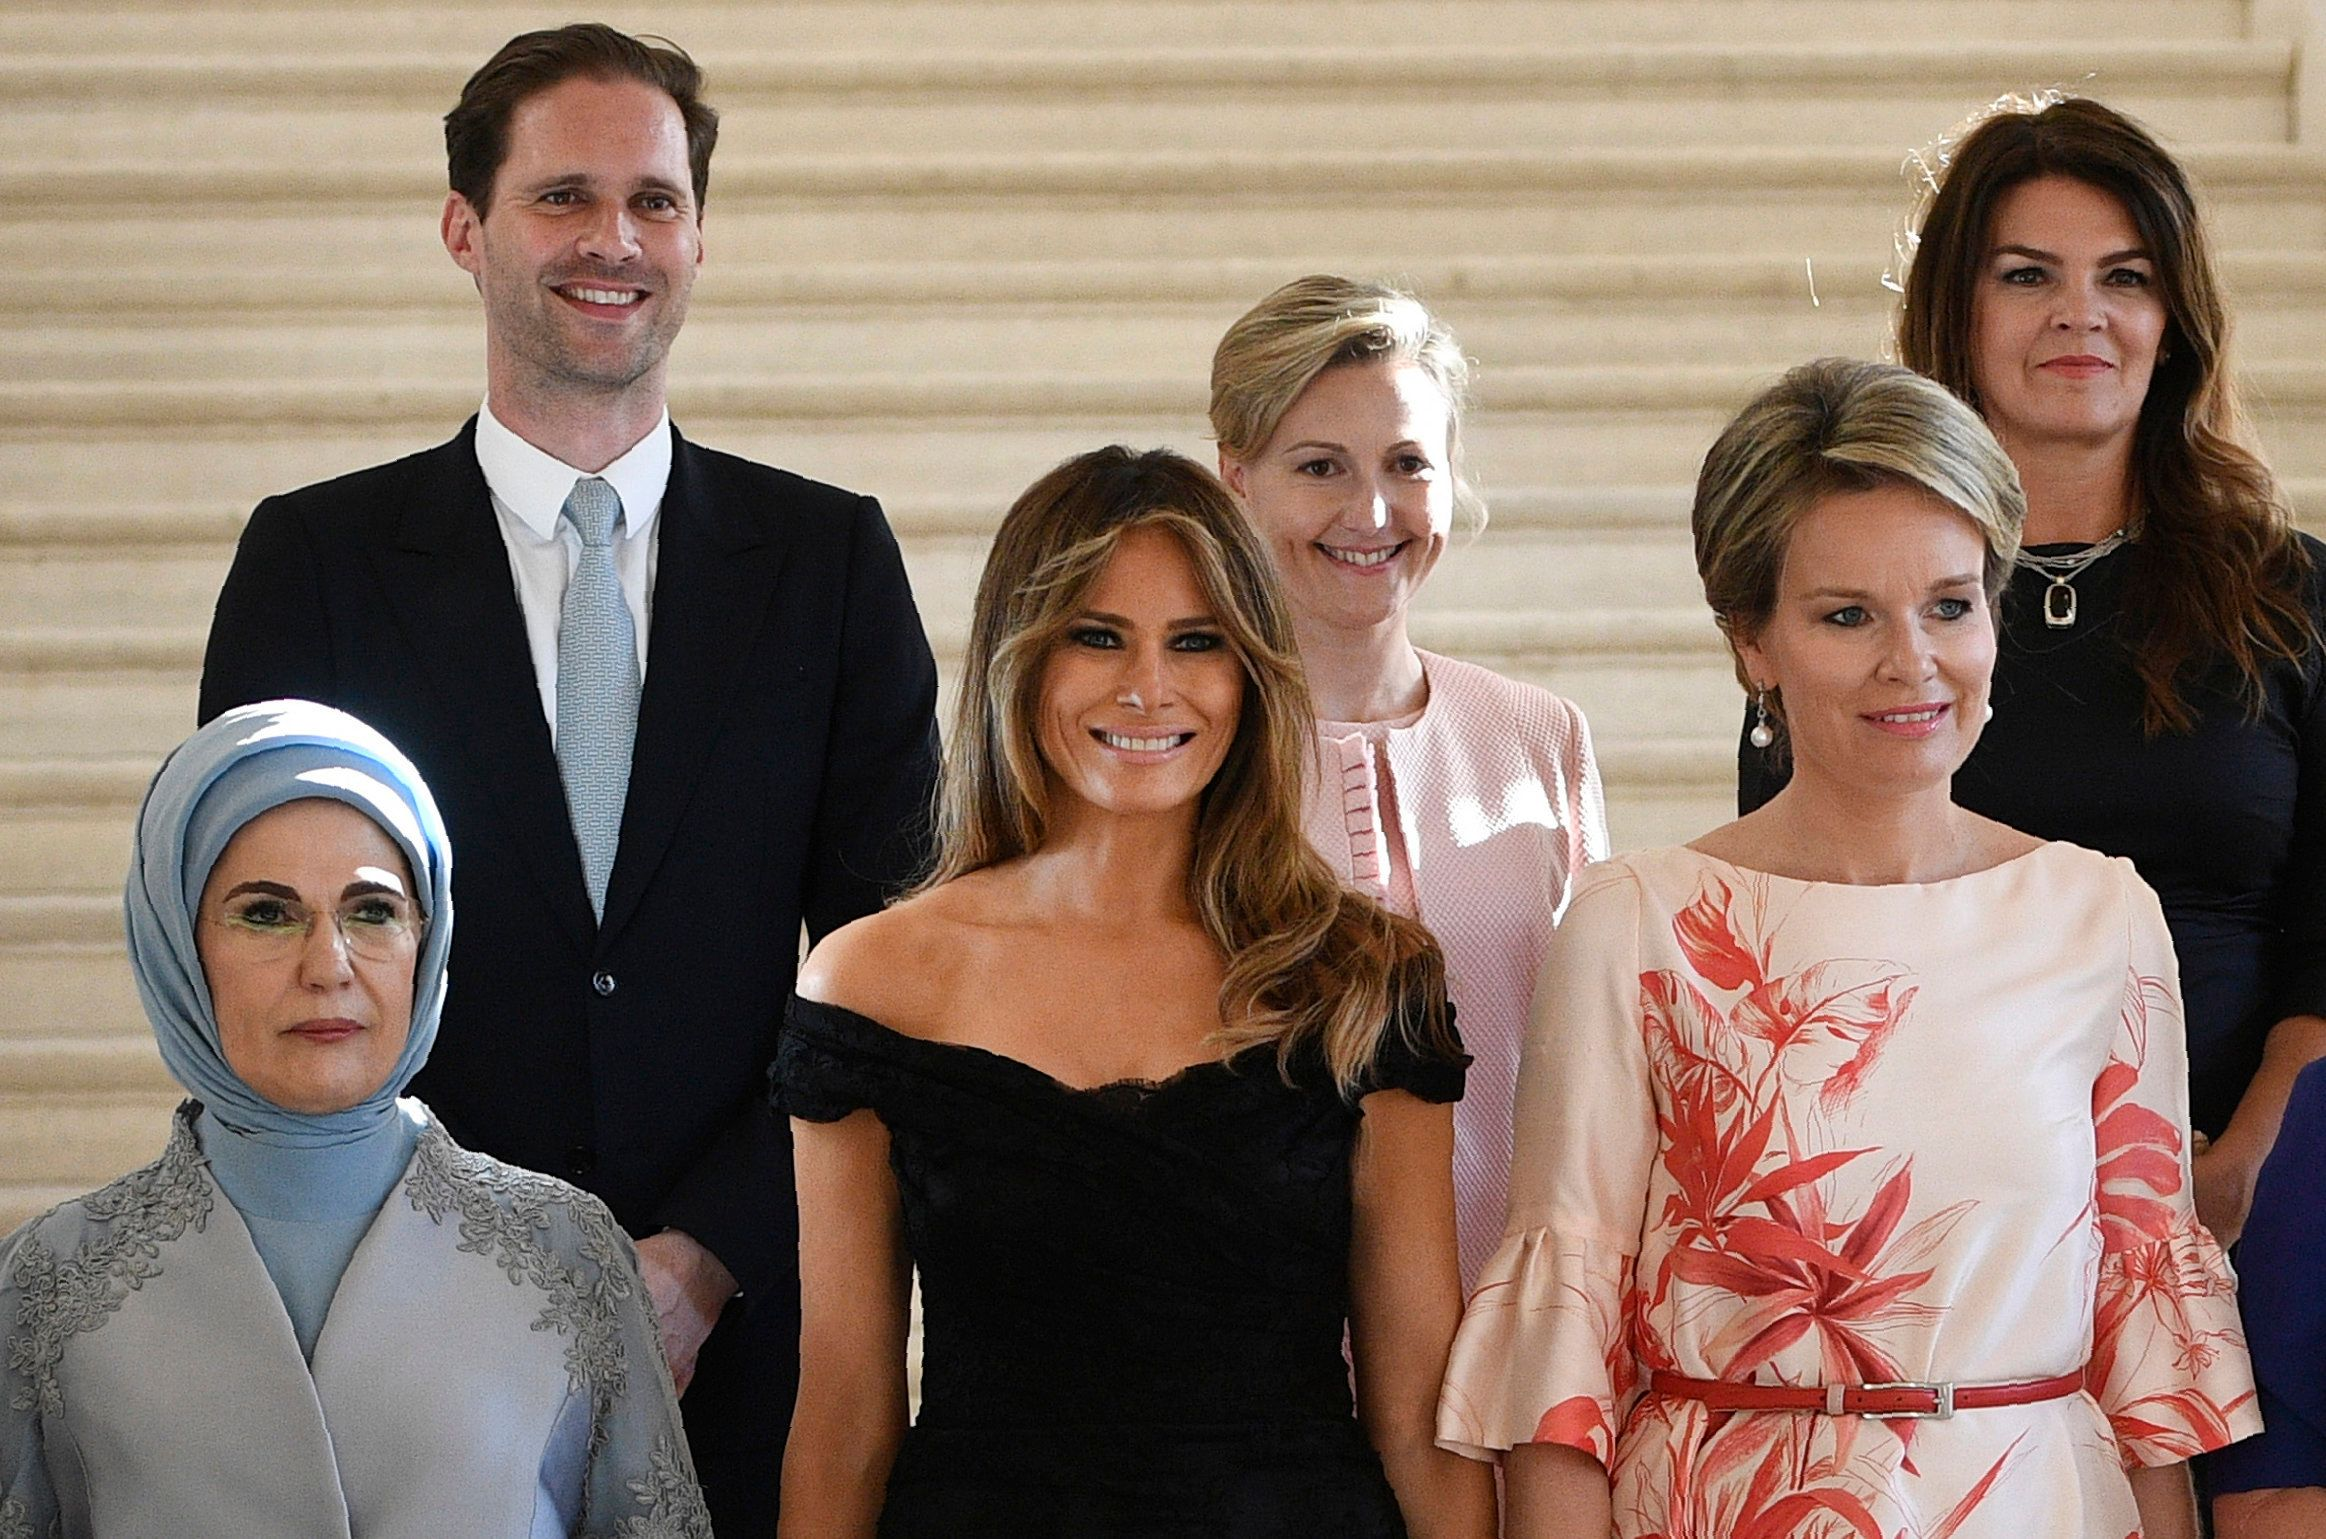 (Front row LtoR) First Lady of Turkey Emine Gulbaran Erdogan, First Lady of the US Melania Trump, Queen Mathilde of Belgium, (back row, LtoR) First Gentleman of Luxembourg Gauthier Destenay, partner of Slovenia's Prime Minister Mojca Stropnik and First Lady of Iceland Thora Margret Baldvinsdottir pose for a family photo before a diner of the First Ladies and Queen at the Royal castle in Laken/Laeken, on May 25, 2017, in Brussels. / AFP PHOTO / BELGA / YORICK JANSENS / Belgium OUT        (Photo credit should read YORICK JANSENS/AFP/Getty Images)